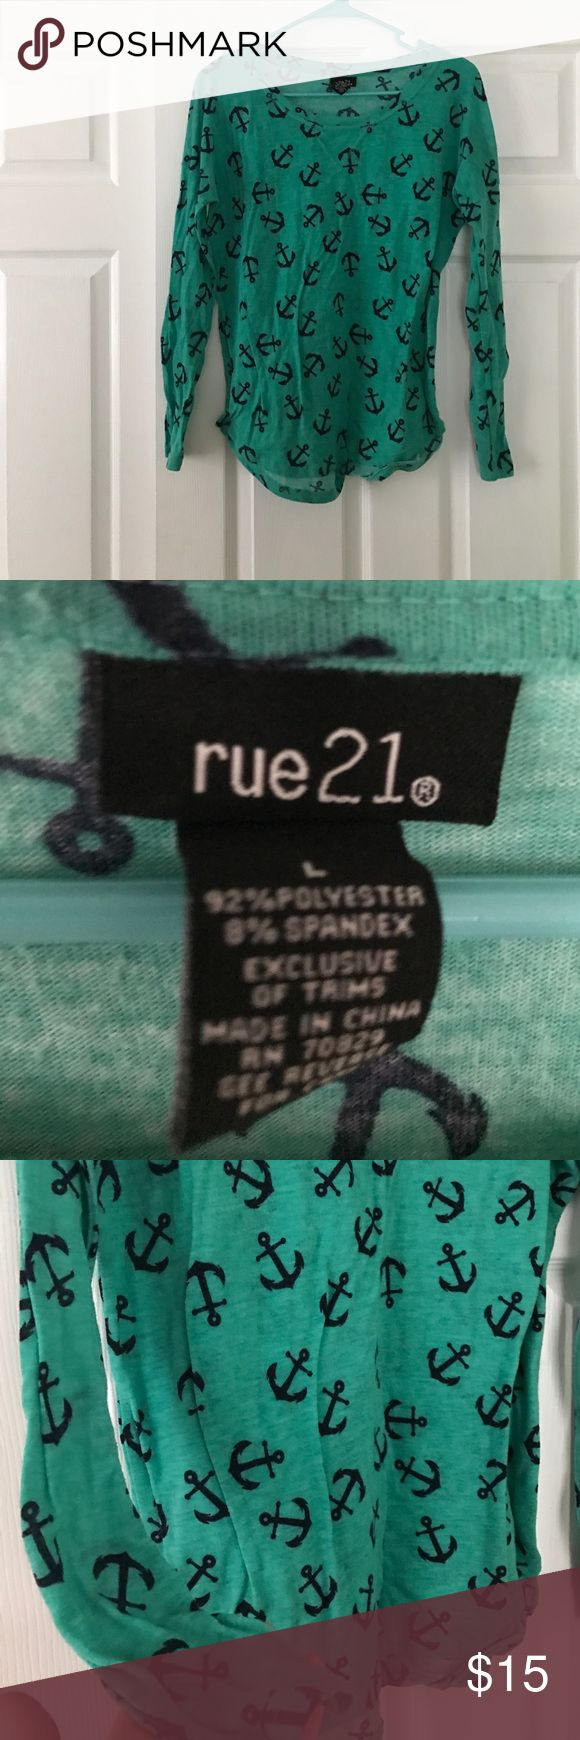 Rue 21 Nautical Top Fierce. Classy. Chic. This Rue 21 Top is a gorgeous addition to any wardrobe. Like new condition. Rue 21 Tops